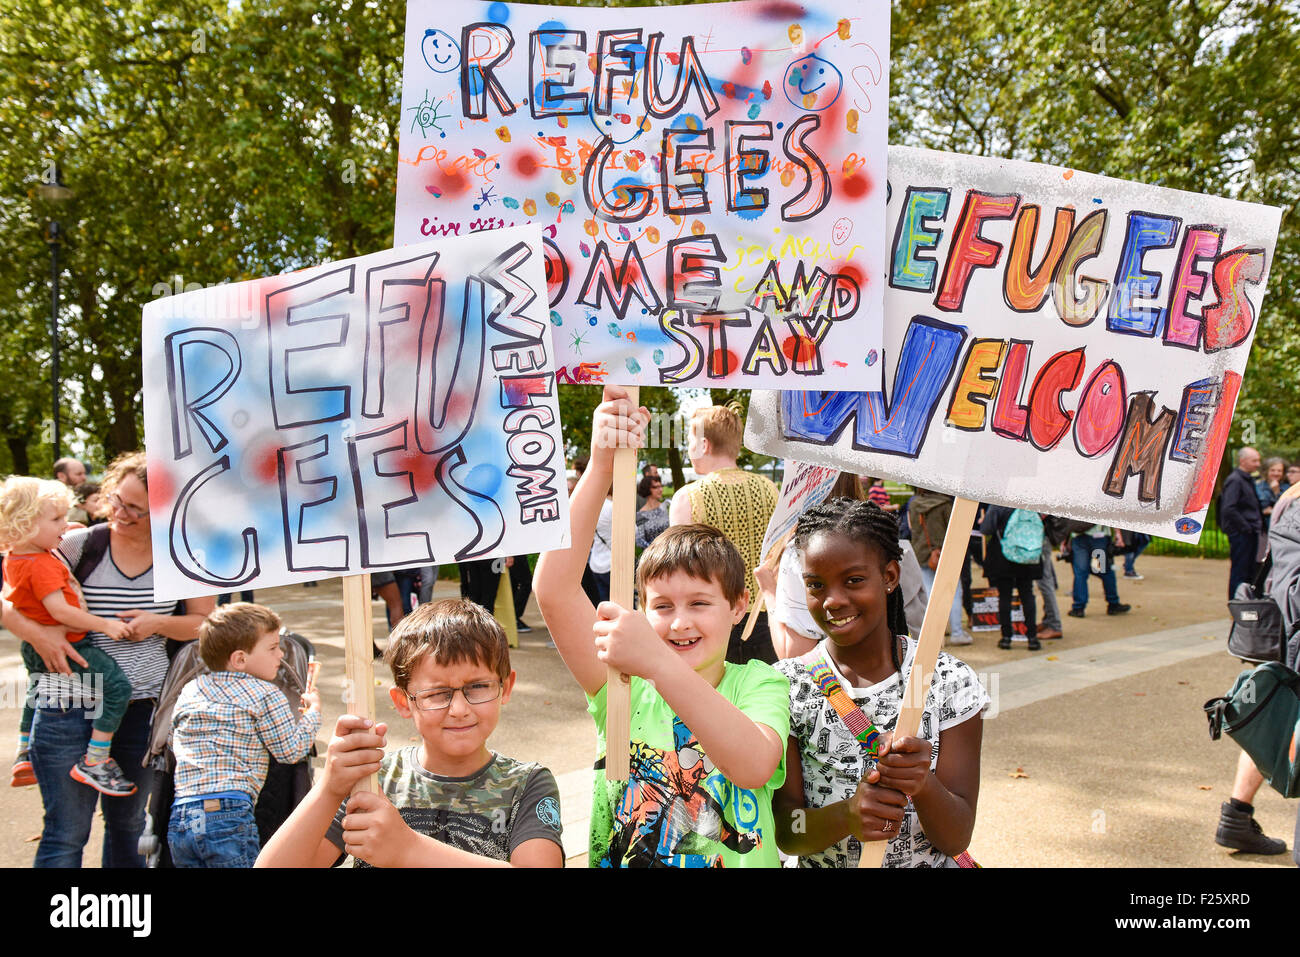 London, UK. 12th September 2015. Maria, Dylan and Max proudly display their colourful placards as they march in - Stock Image